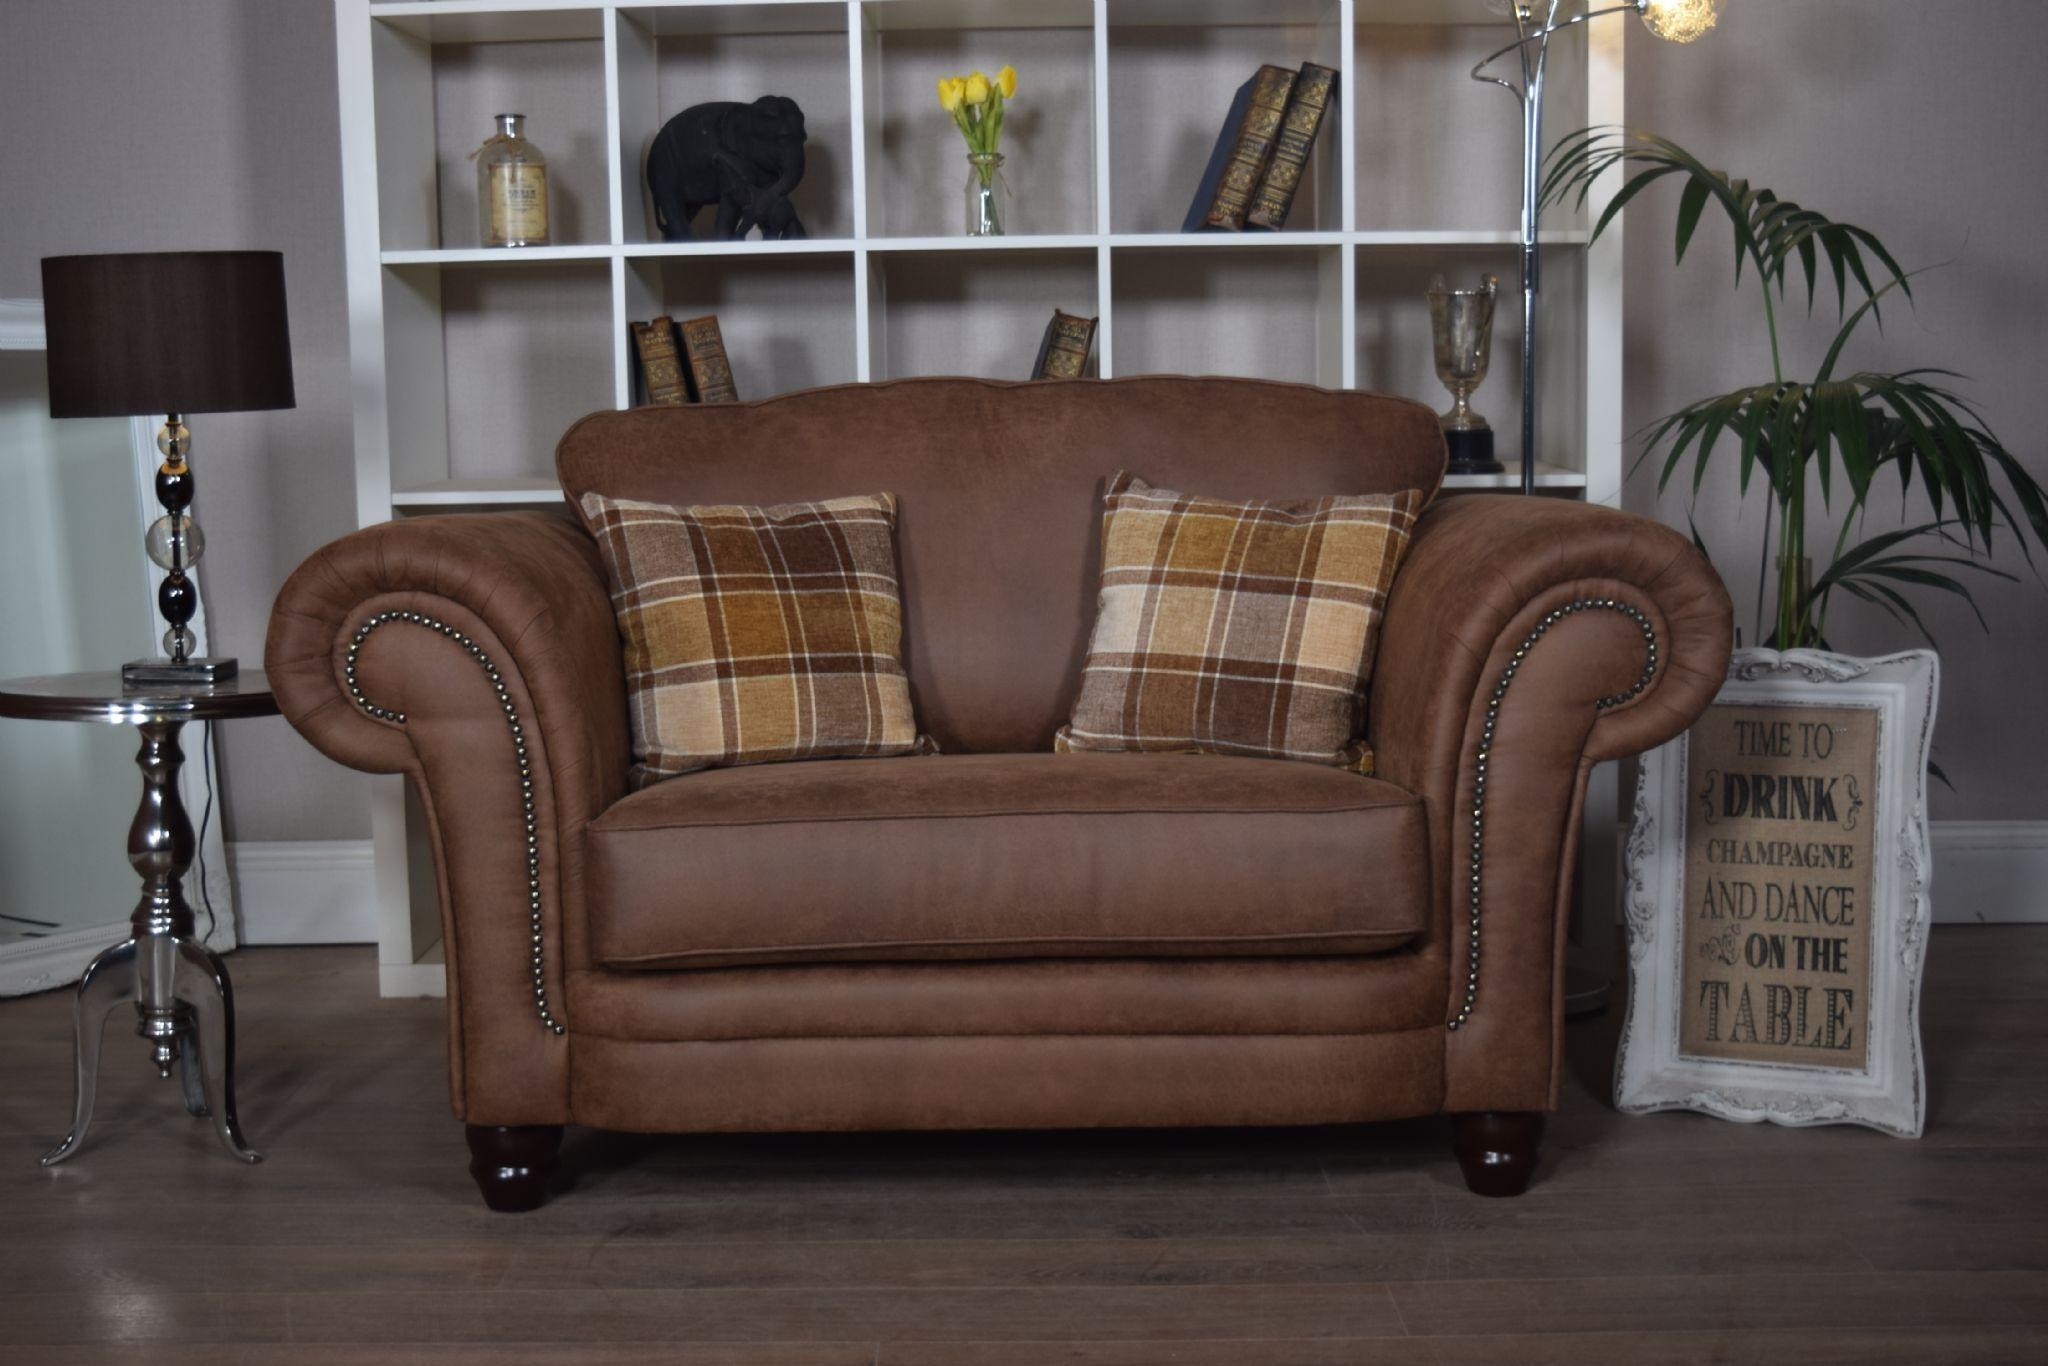 Set Abbey Downton 3 Seater Sofa & Large Cuddle Chair – Tan Fitted Back Within 3 Seater Sofa And Cuddle Chairs (Image 5 of 20)